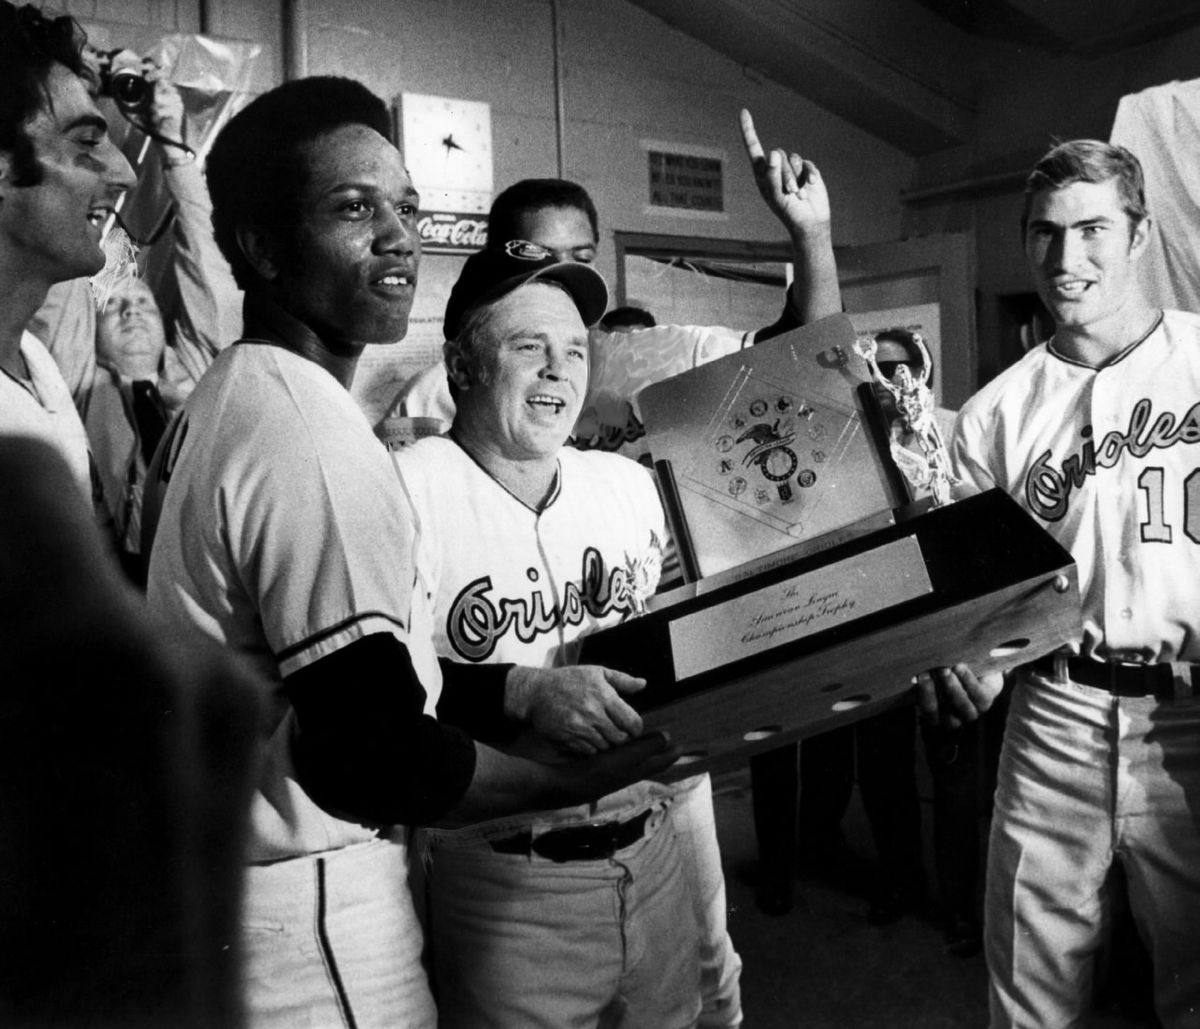 Orioles celebrate 50th anniversary of 1970 World Series title: 'Our one goal was to win, period'